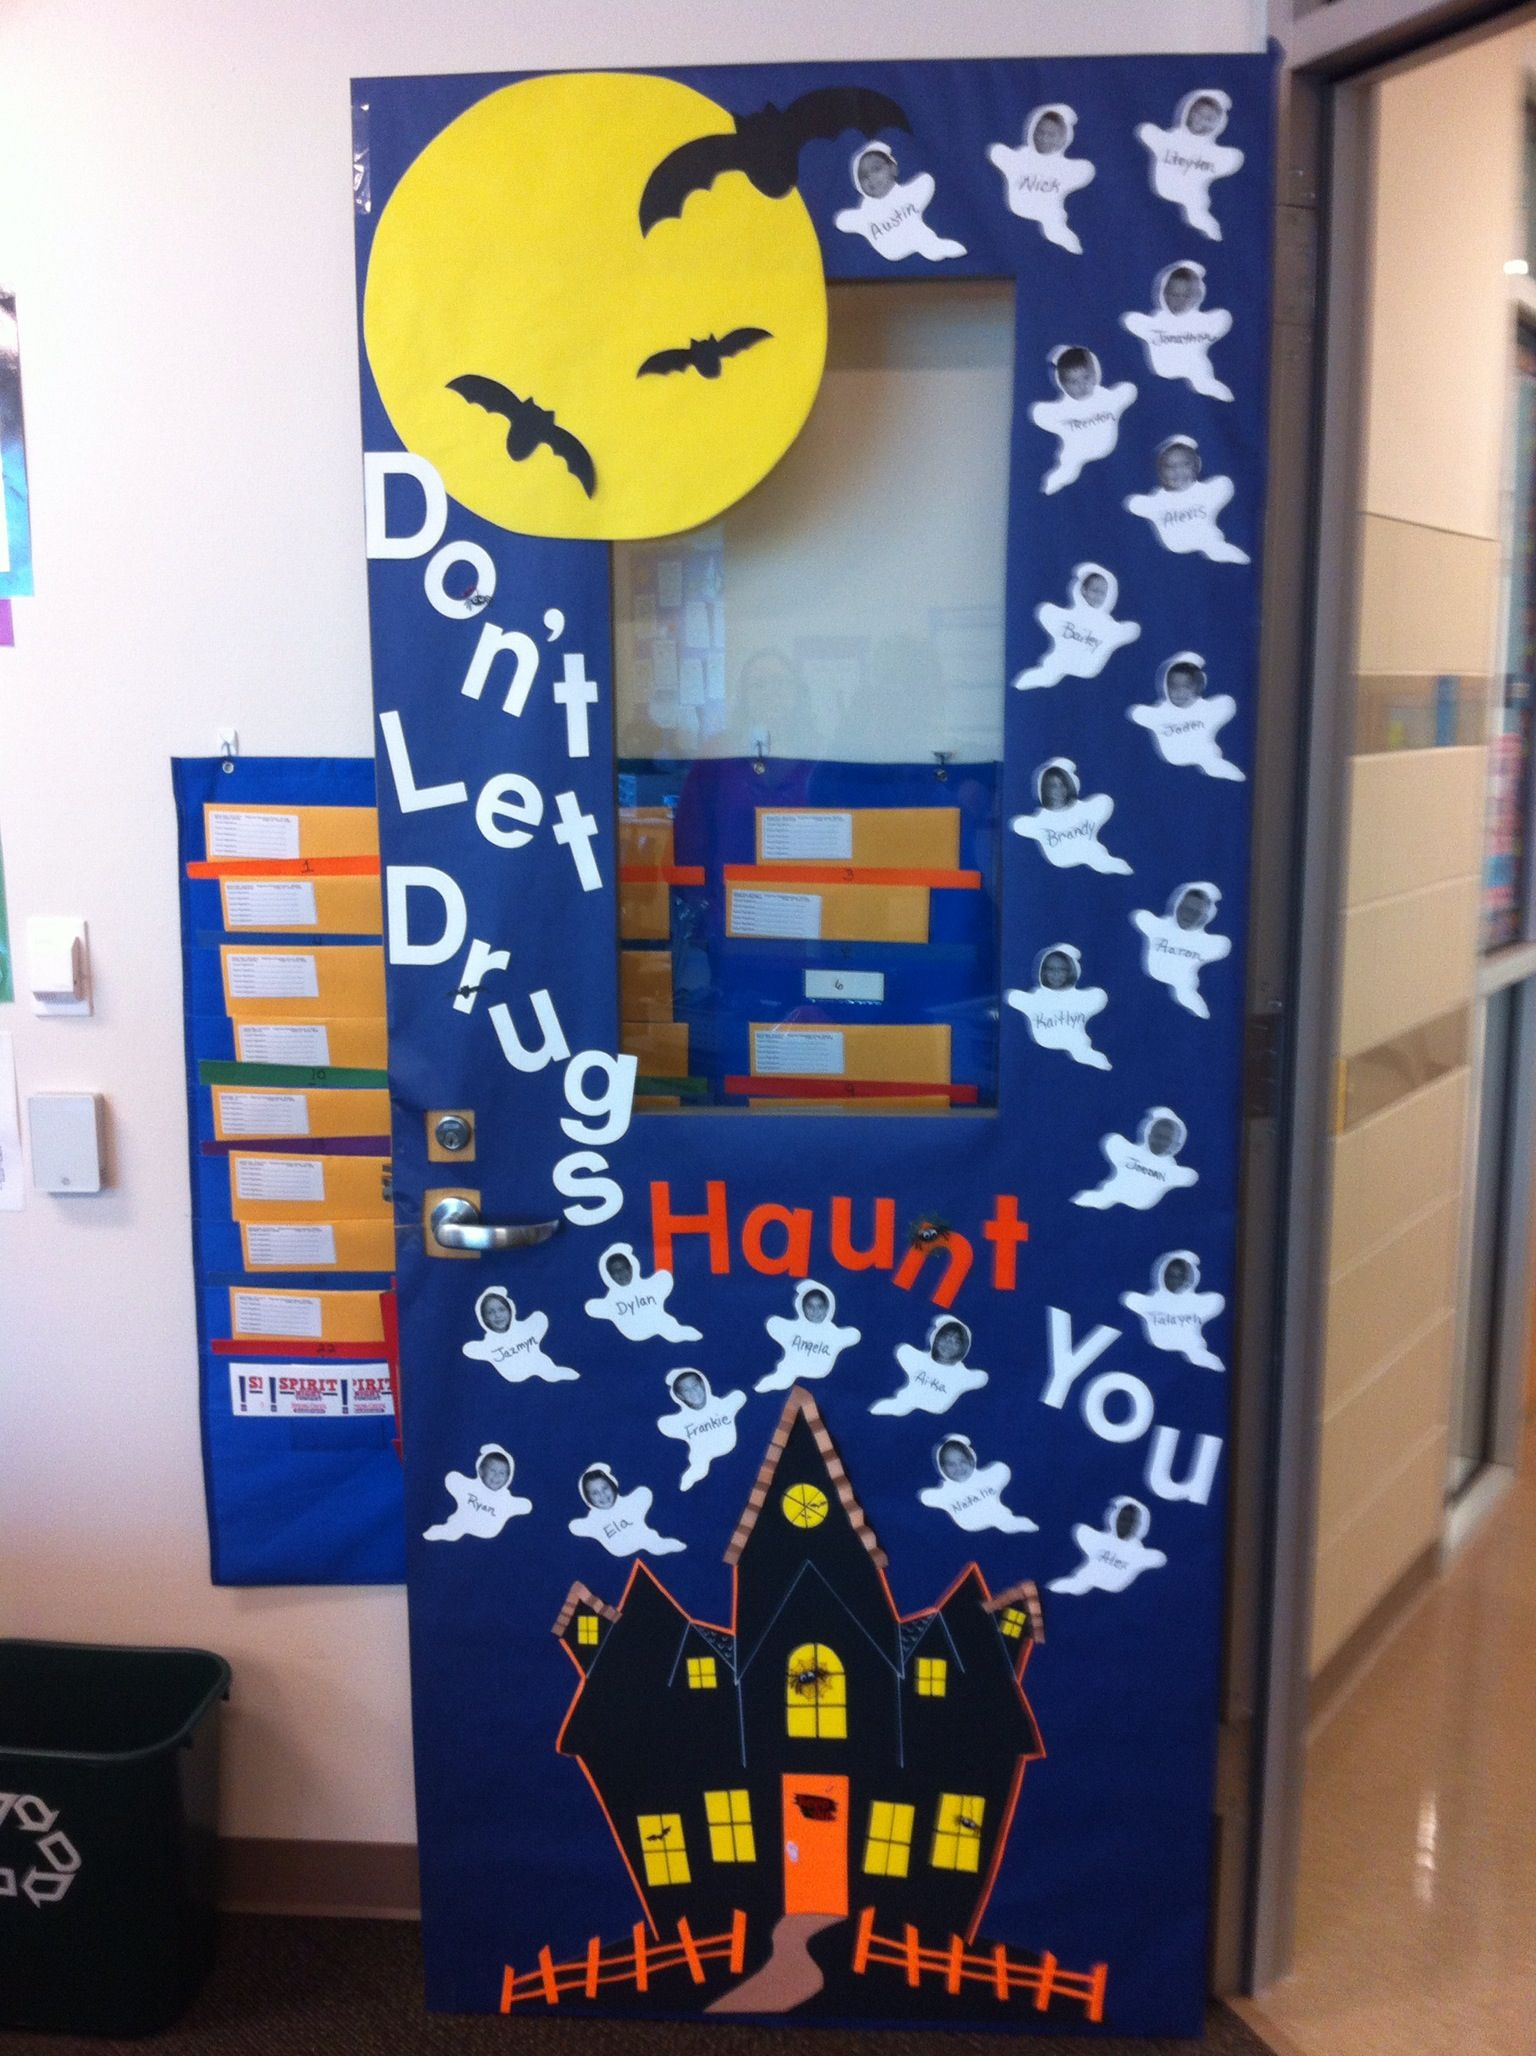 Got the door decorated for red ribbon weekanks mom for helping got the door decorated for red ribbon weekanks mom for helping make the vtopaller Choice Image